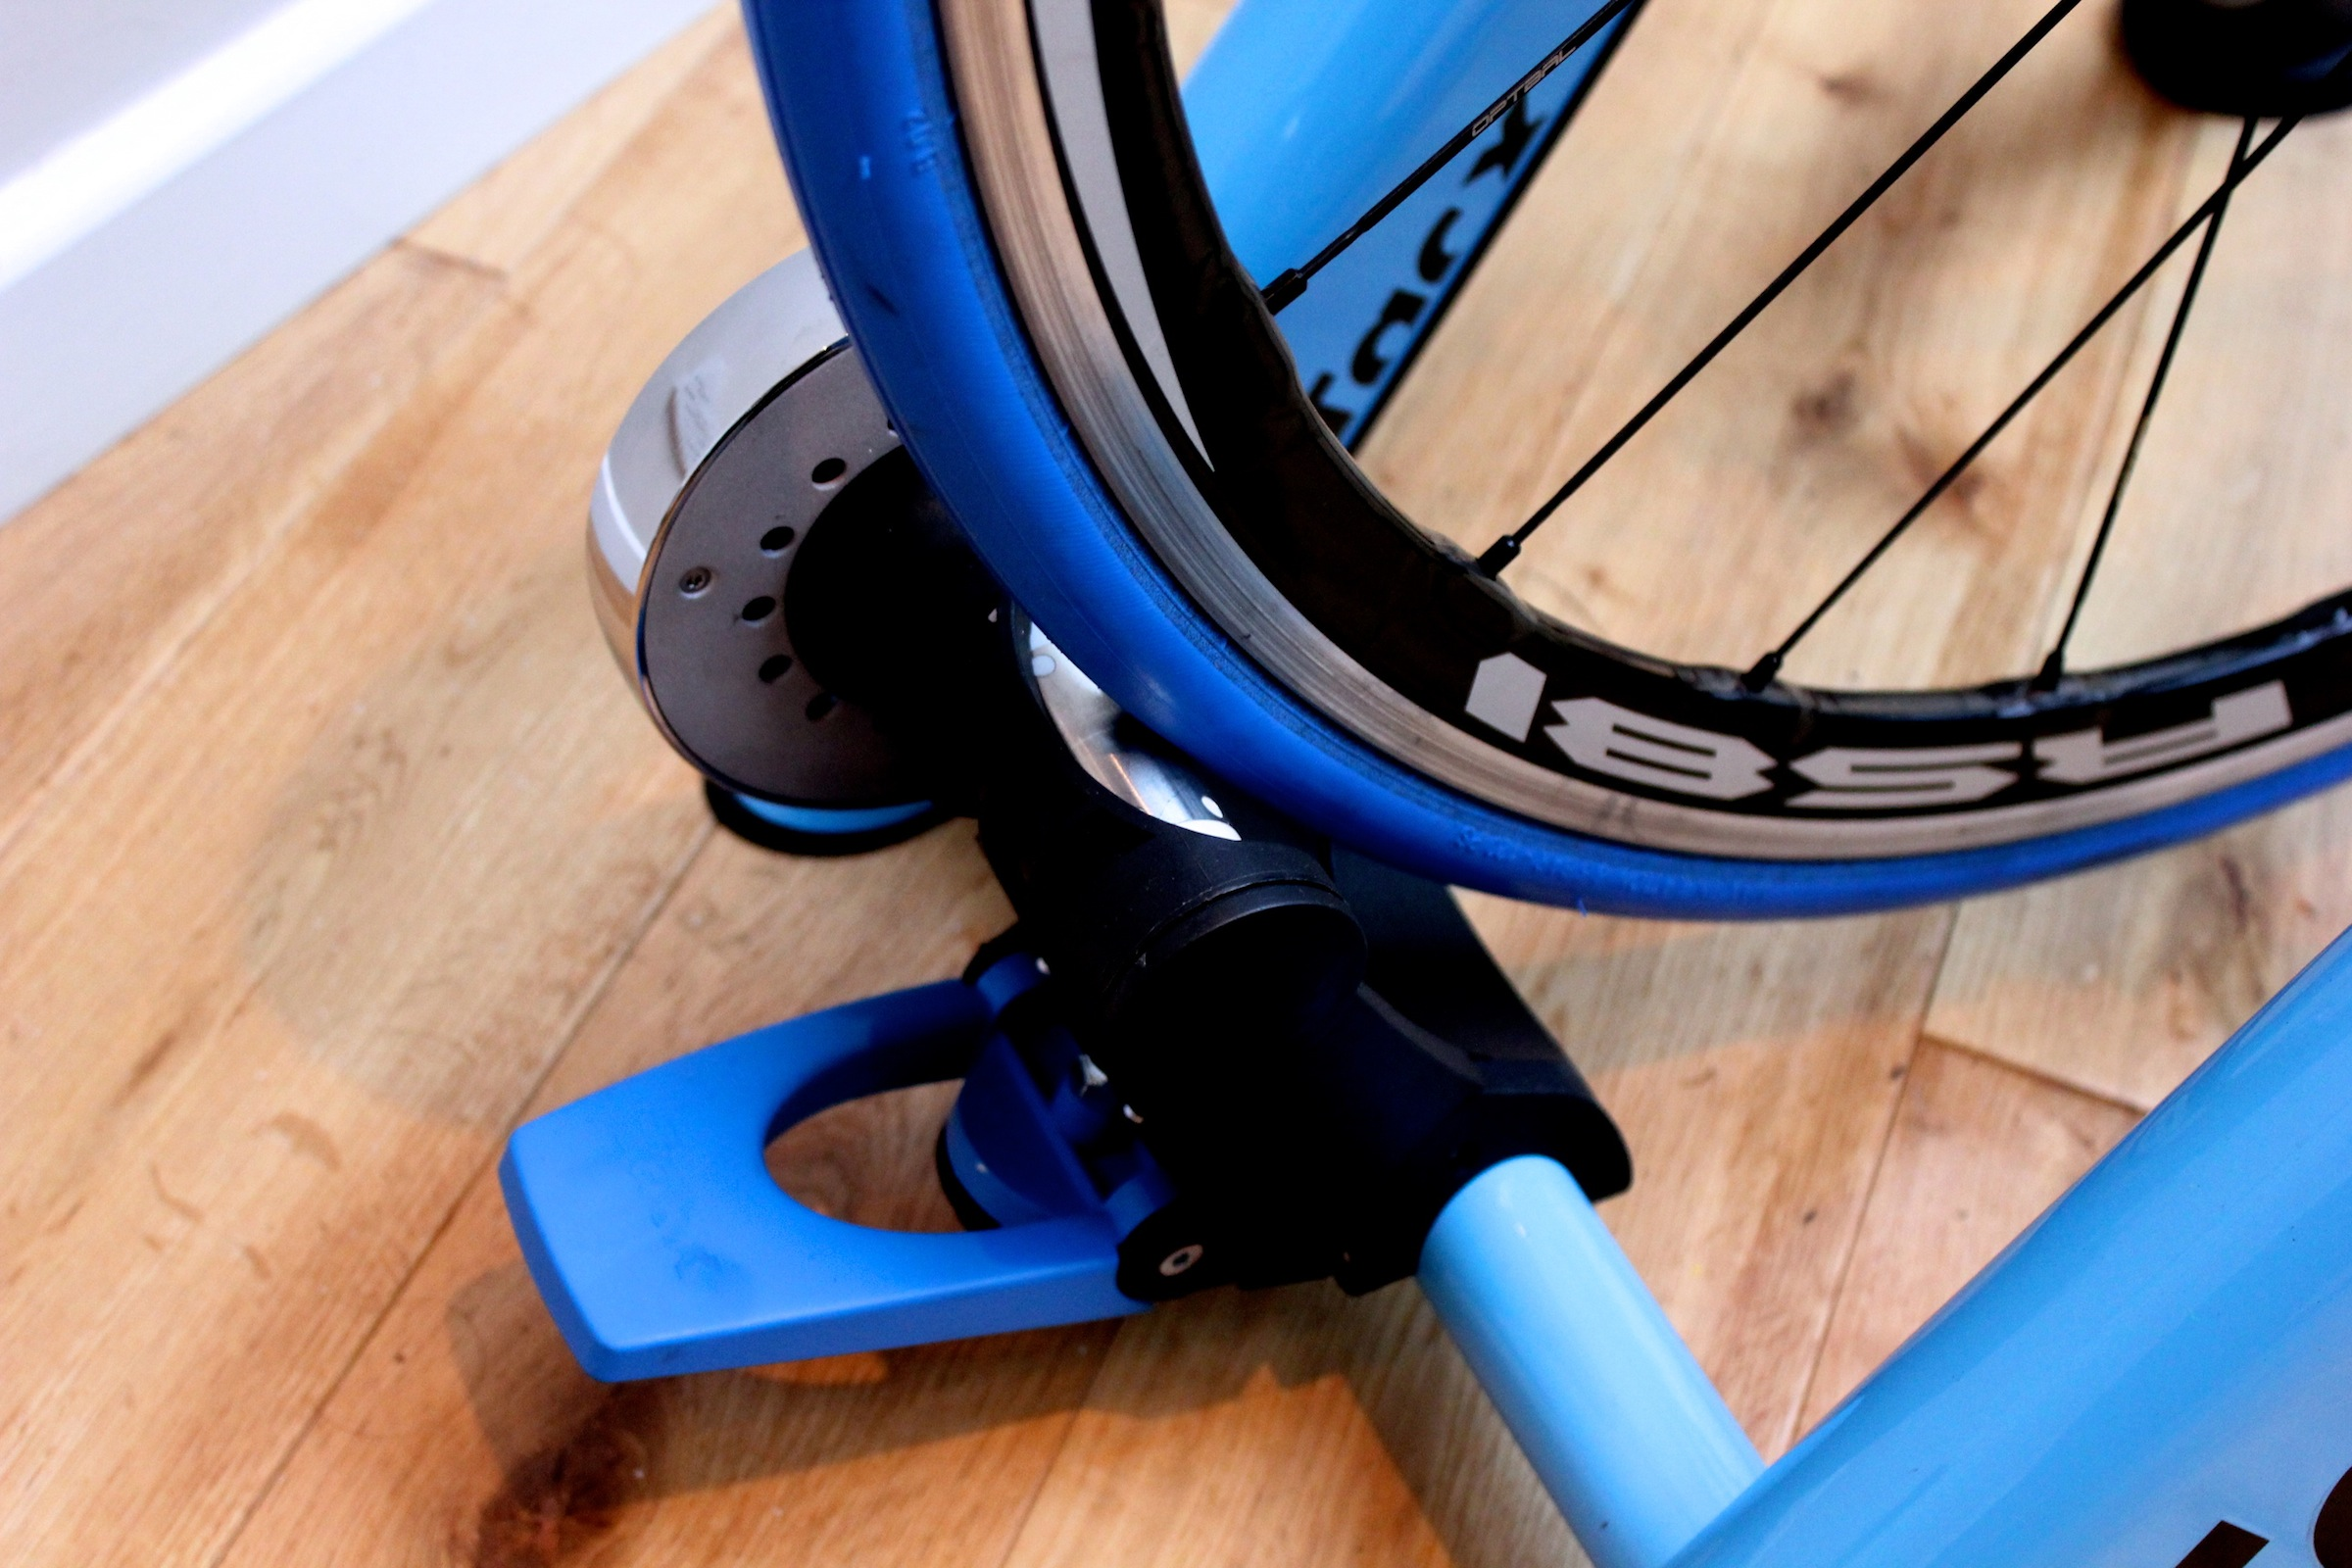 Tacx Blue Motion turbo trainer, roller, pic: Timothy John, ©Factory Media